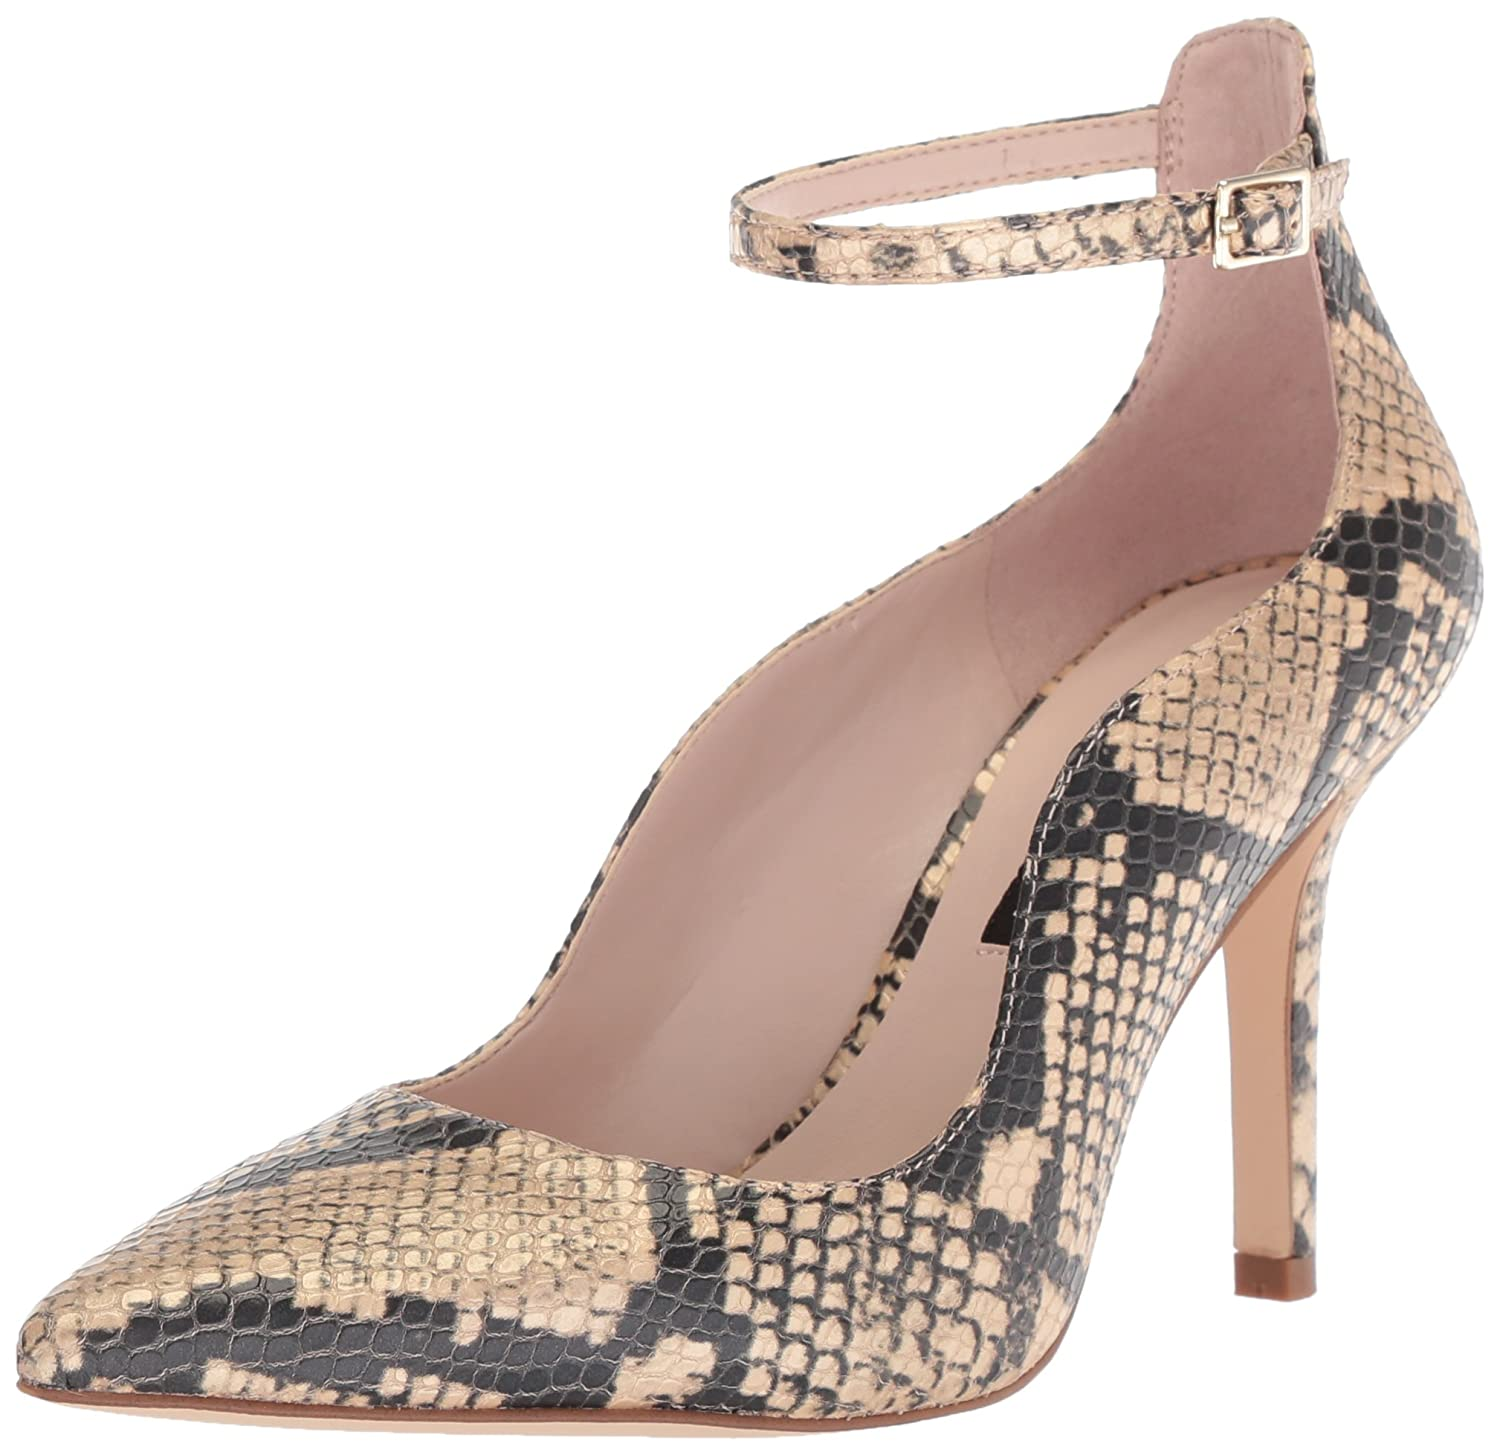 Nine West Women's Marquisa Reptile Print Pump B074NJYB78 10.5 B(M) US|Light Gold Reptile Print